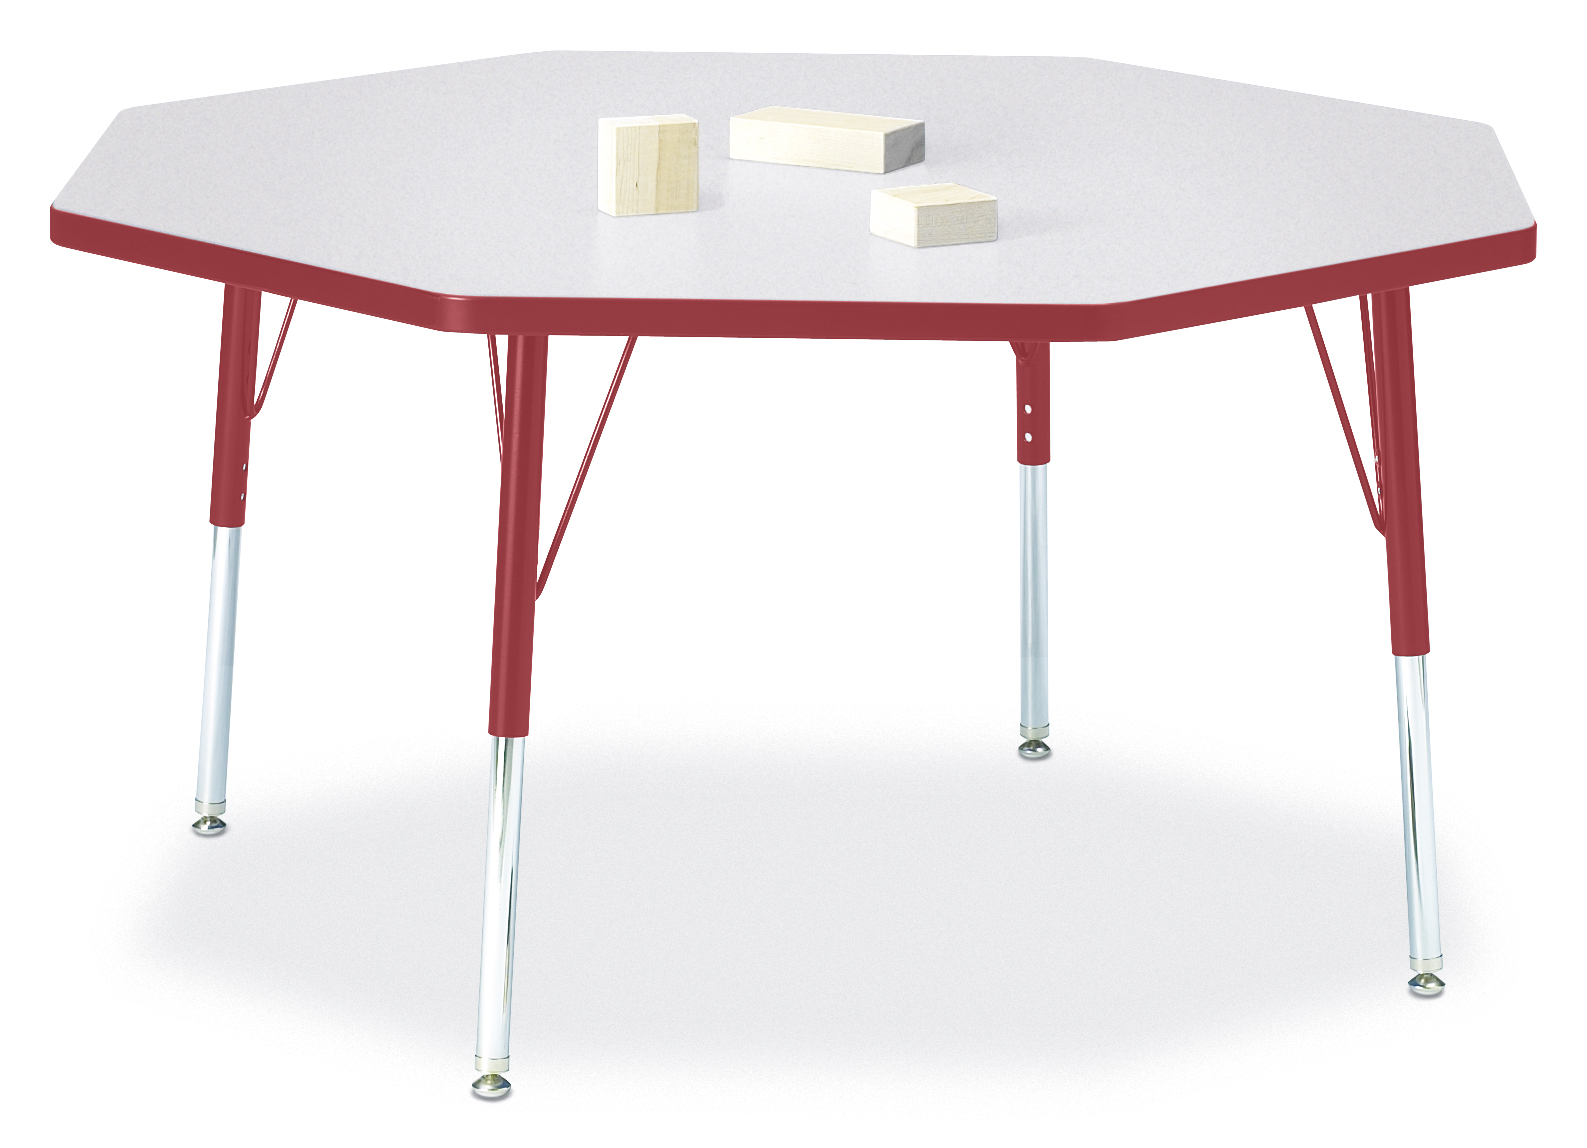 Berries round activity table 48 diameter mobile for Mobile furniture